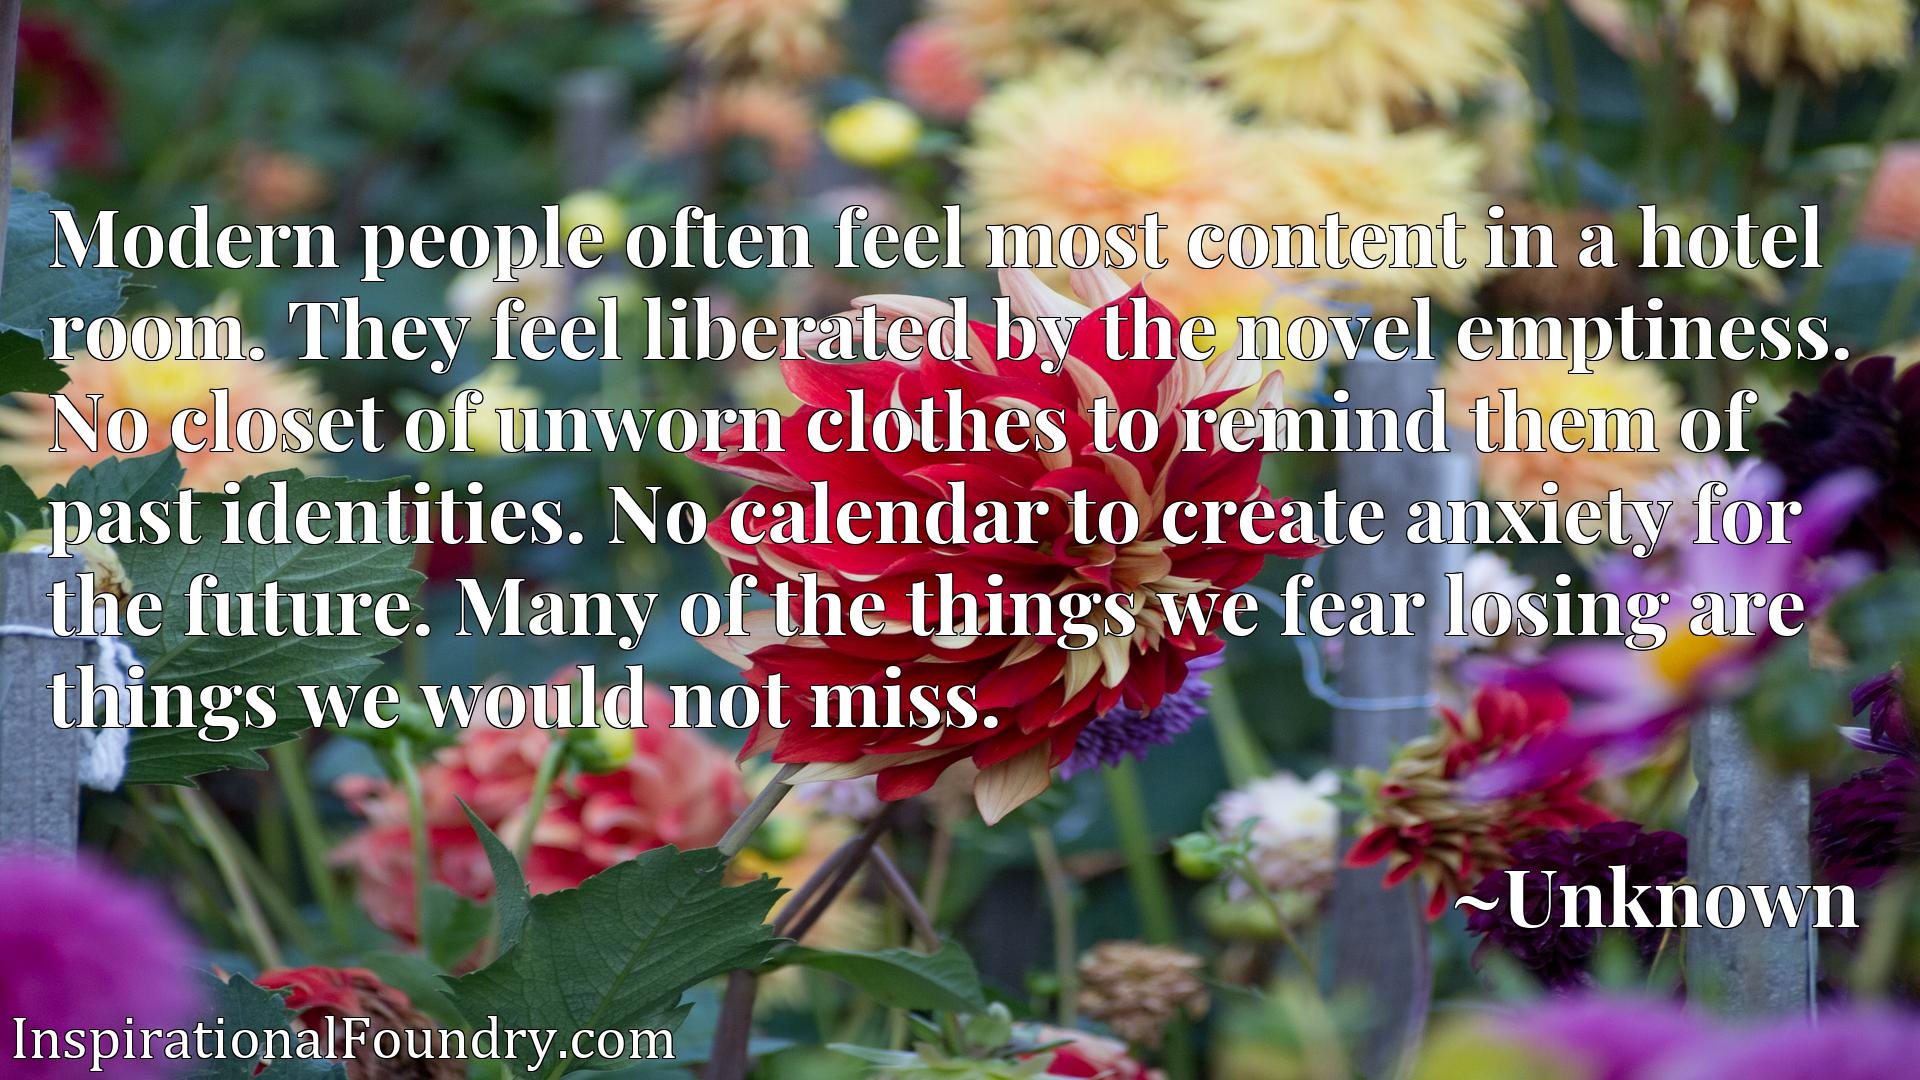 Modern people often feel most content in a hotel room. They feel liberated by the novel emptiness. No closet of unworn clothes to remind them of past identities. No calendar to create anxiety for the future. Many of the things we fear losing are things we would not miss.